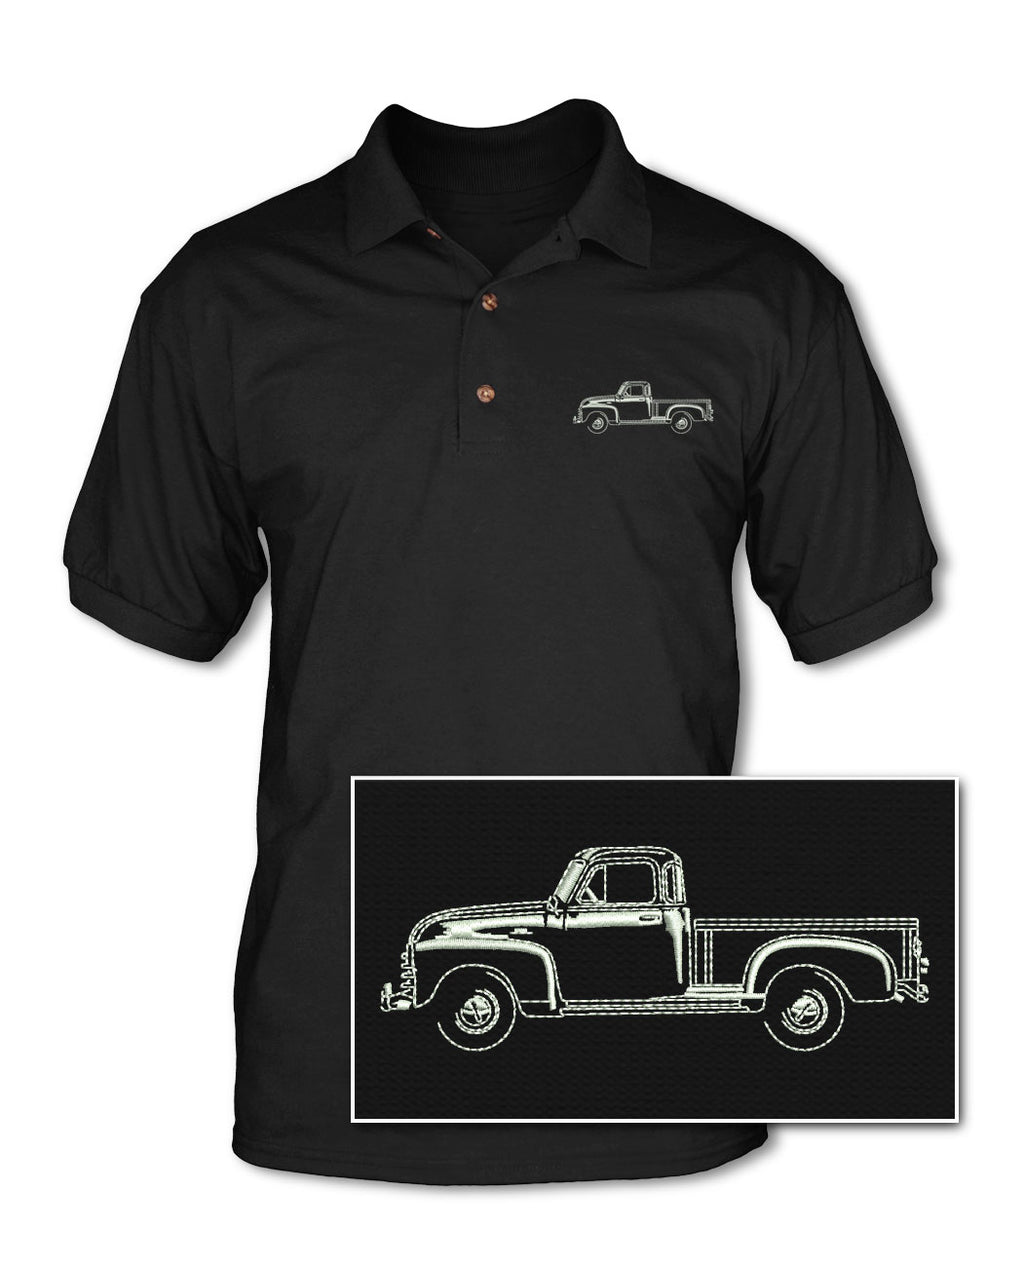 1951 - 1954 Chevrolet Pickup 3100 Adult Pique Polo Shirt - Side View